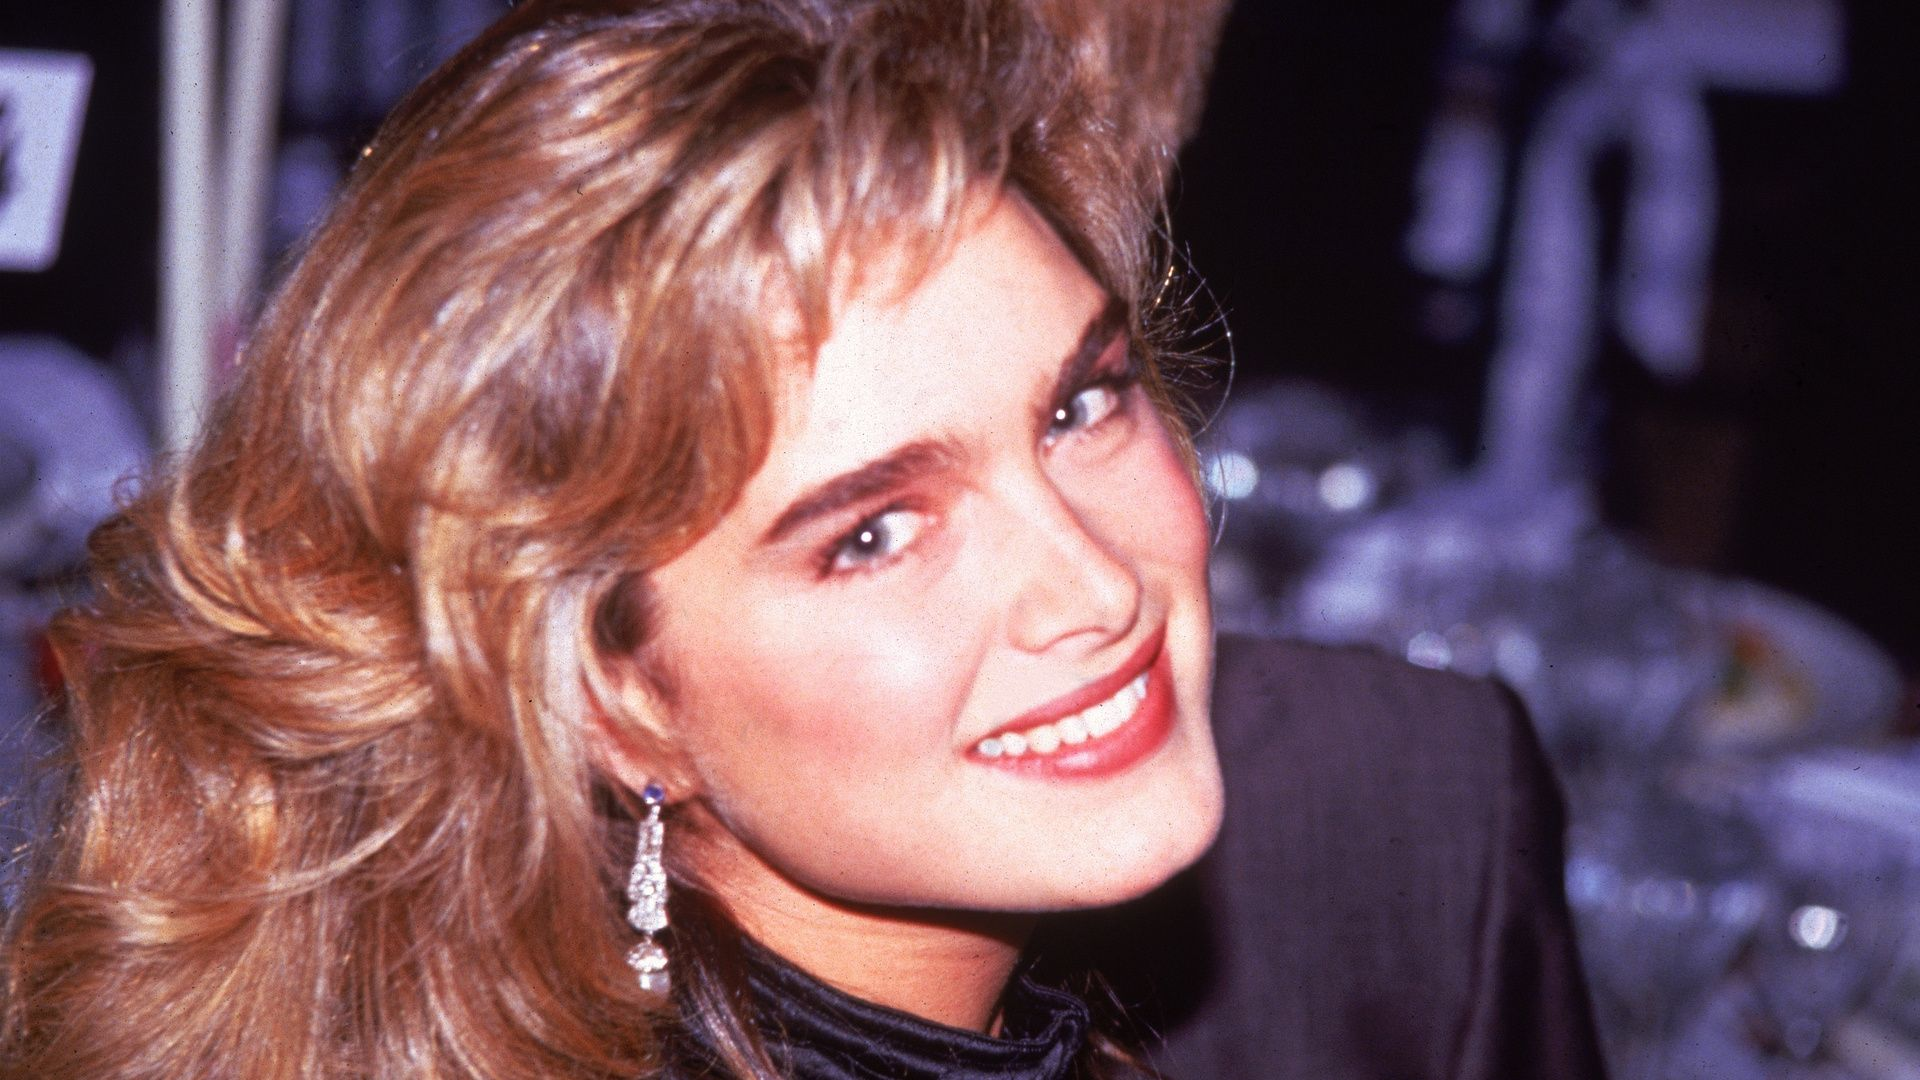 80s beauty icons: big hair, bright colors and bold